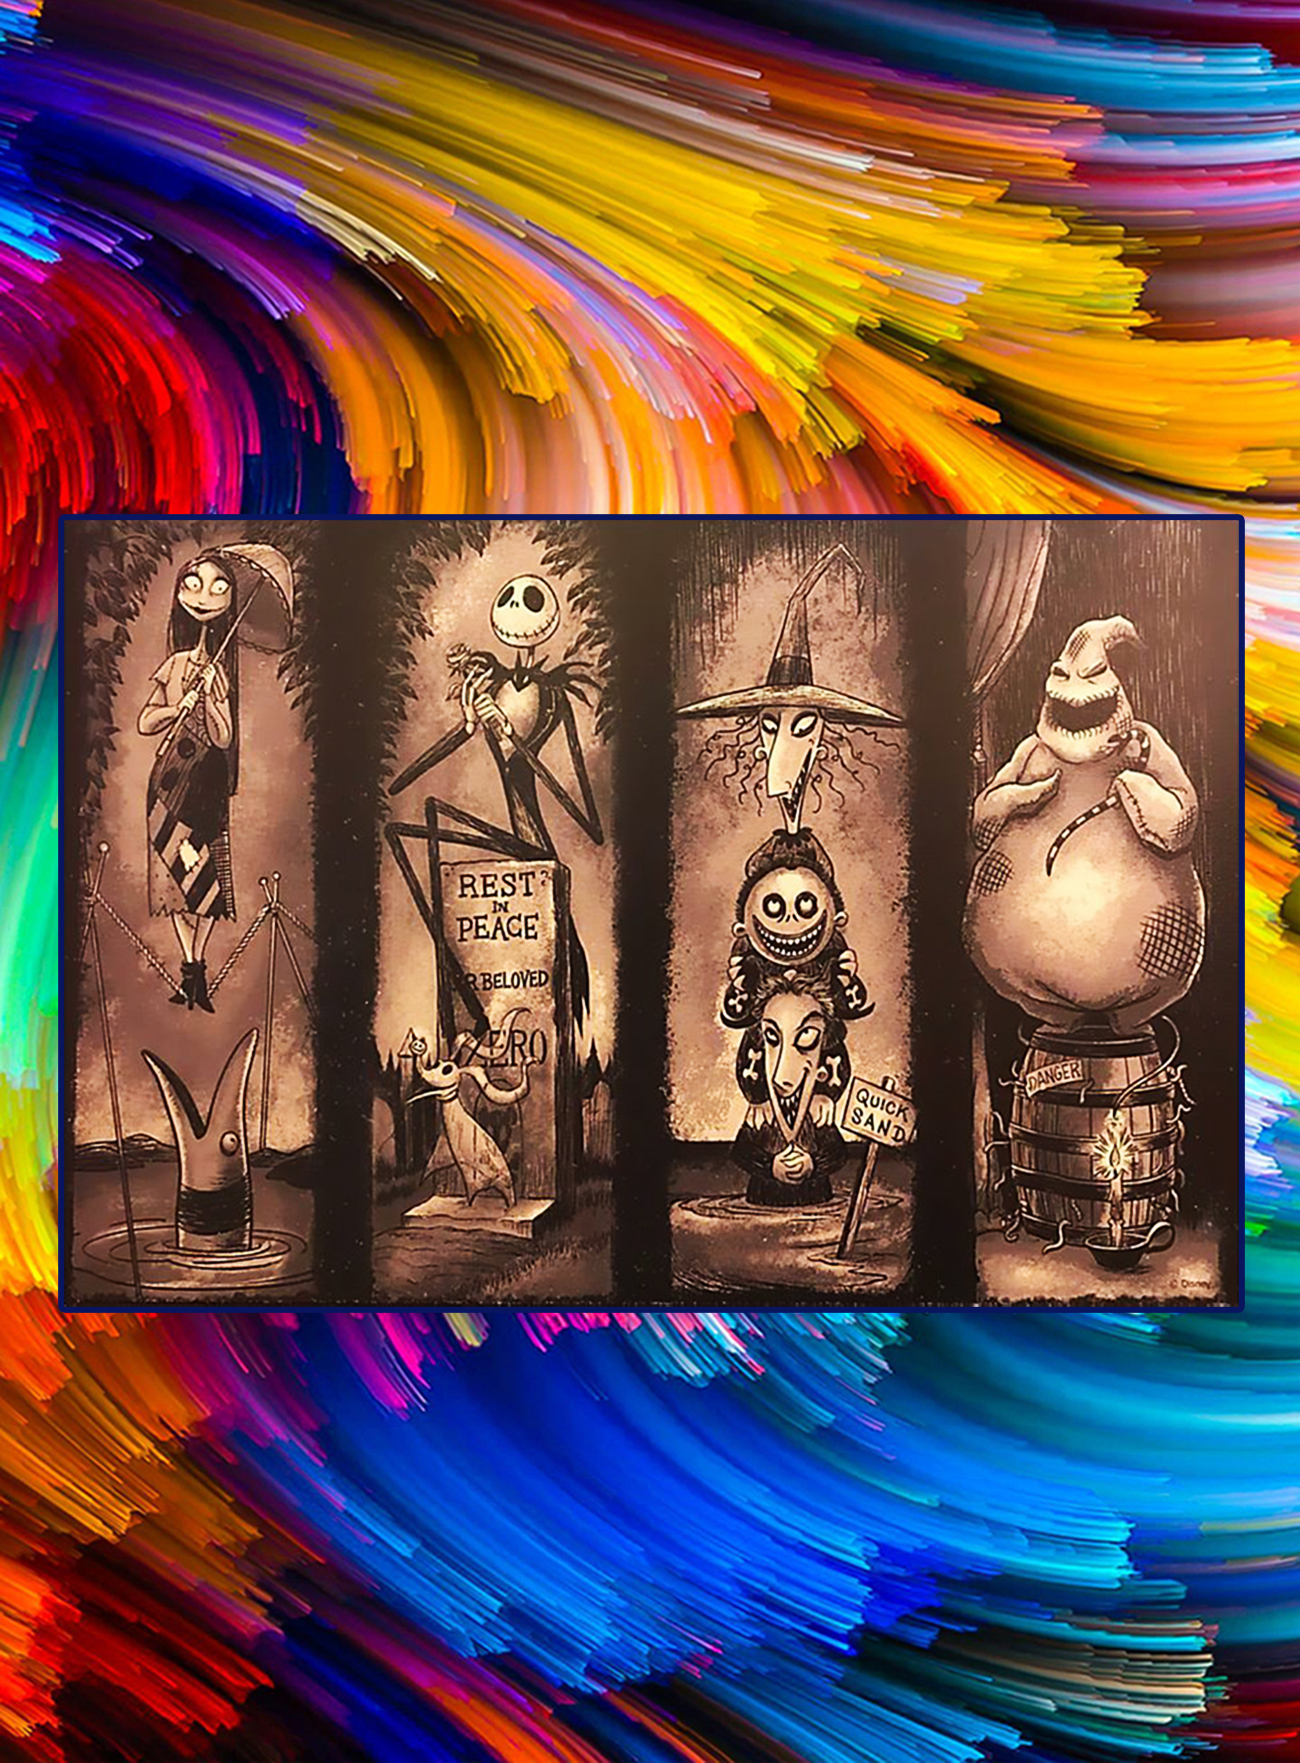 Nightmare before christmas stretching room poster - A1